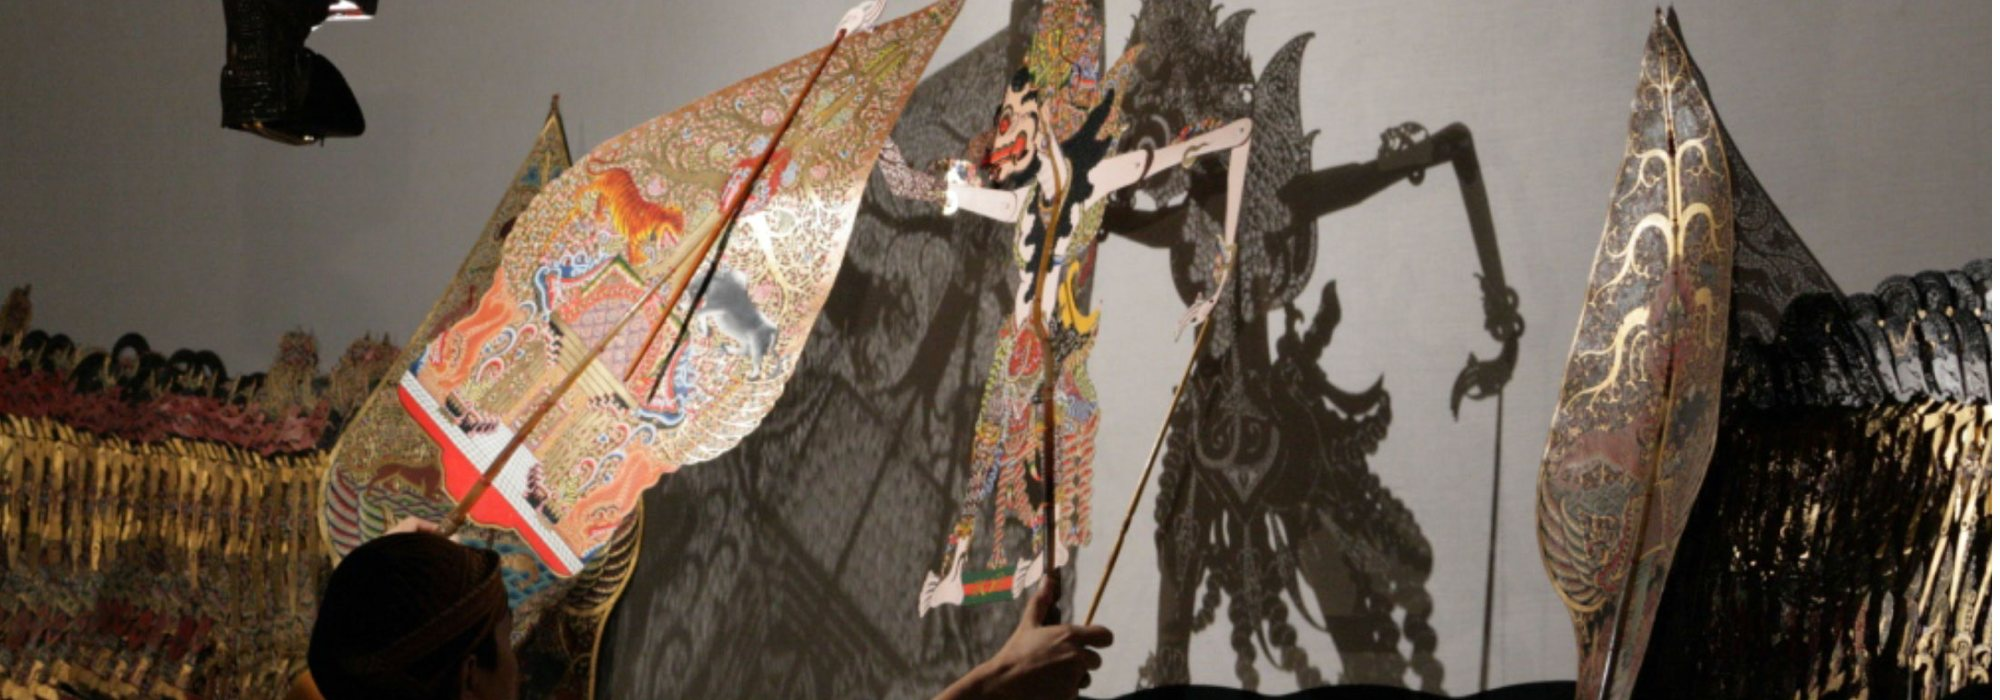 Shadow puppet made of intricately cut paper being controlled by puppeteer.